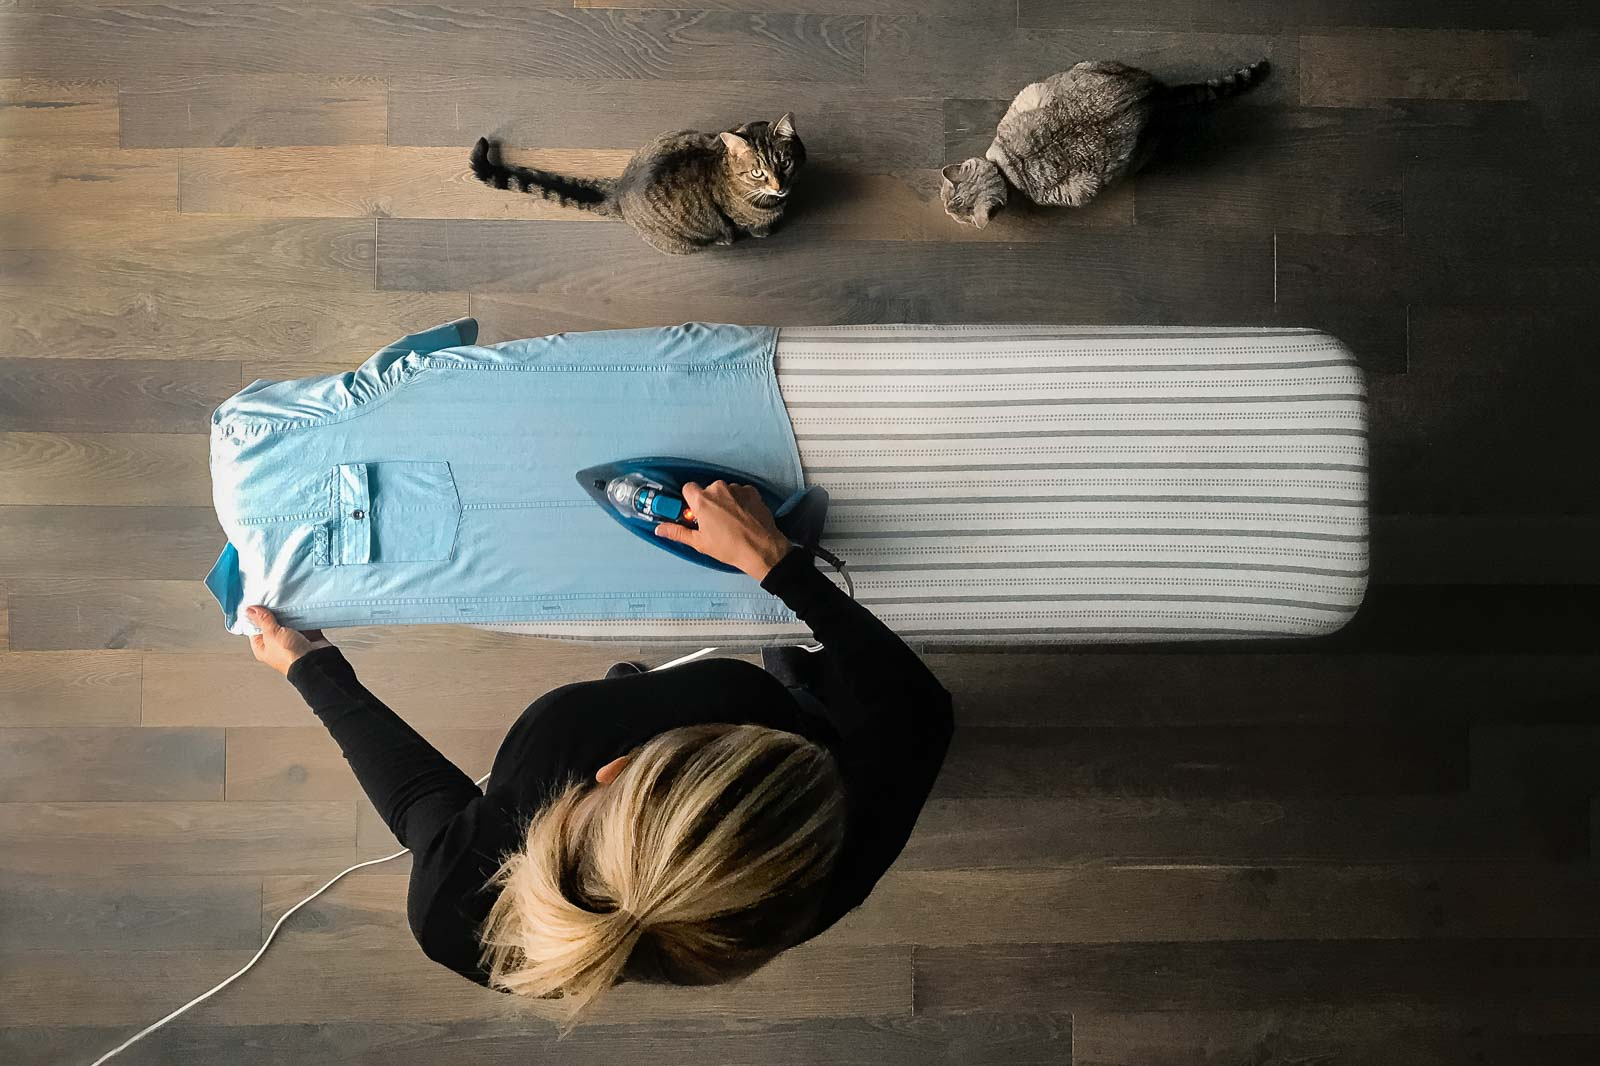 selfie from above of woman ironing as cats watch